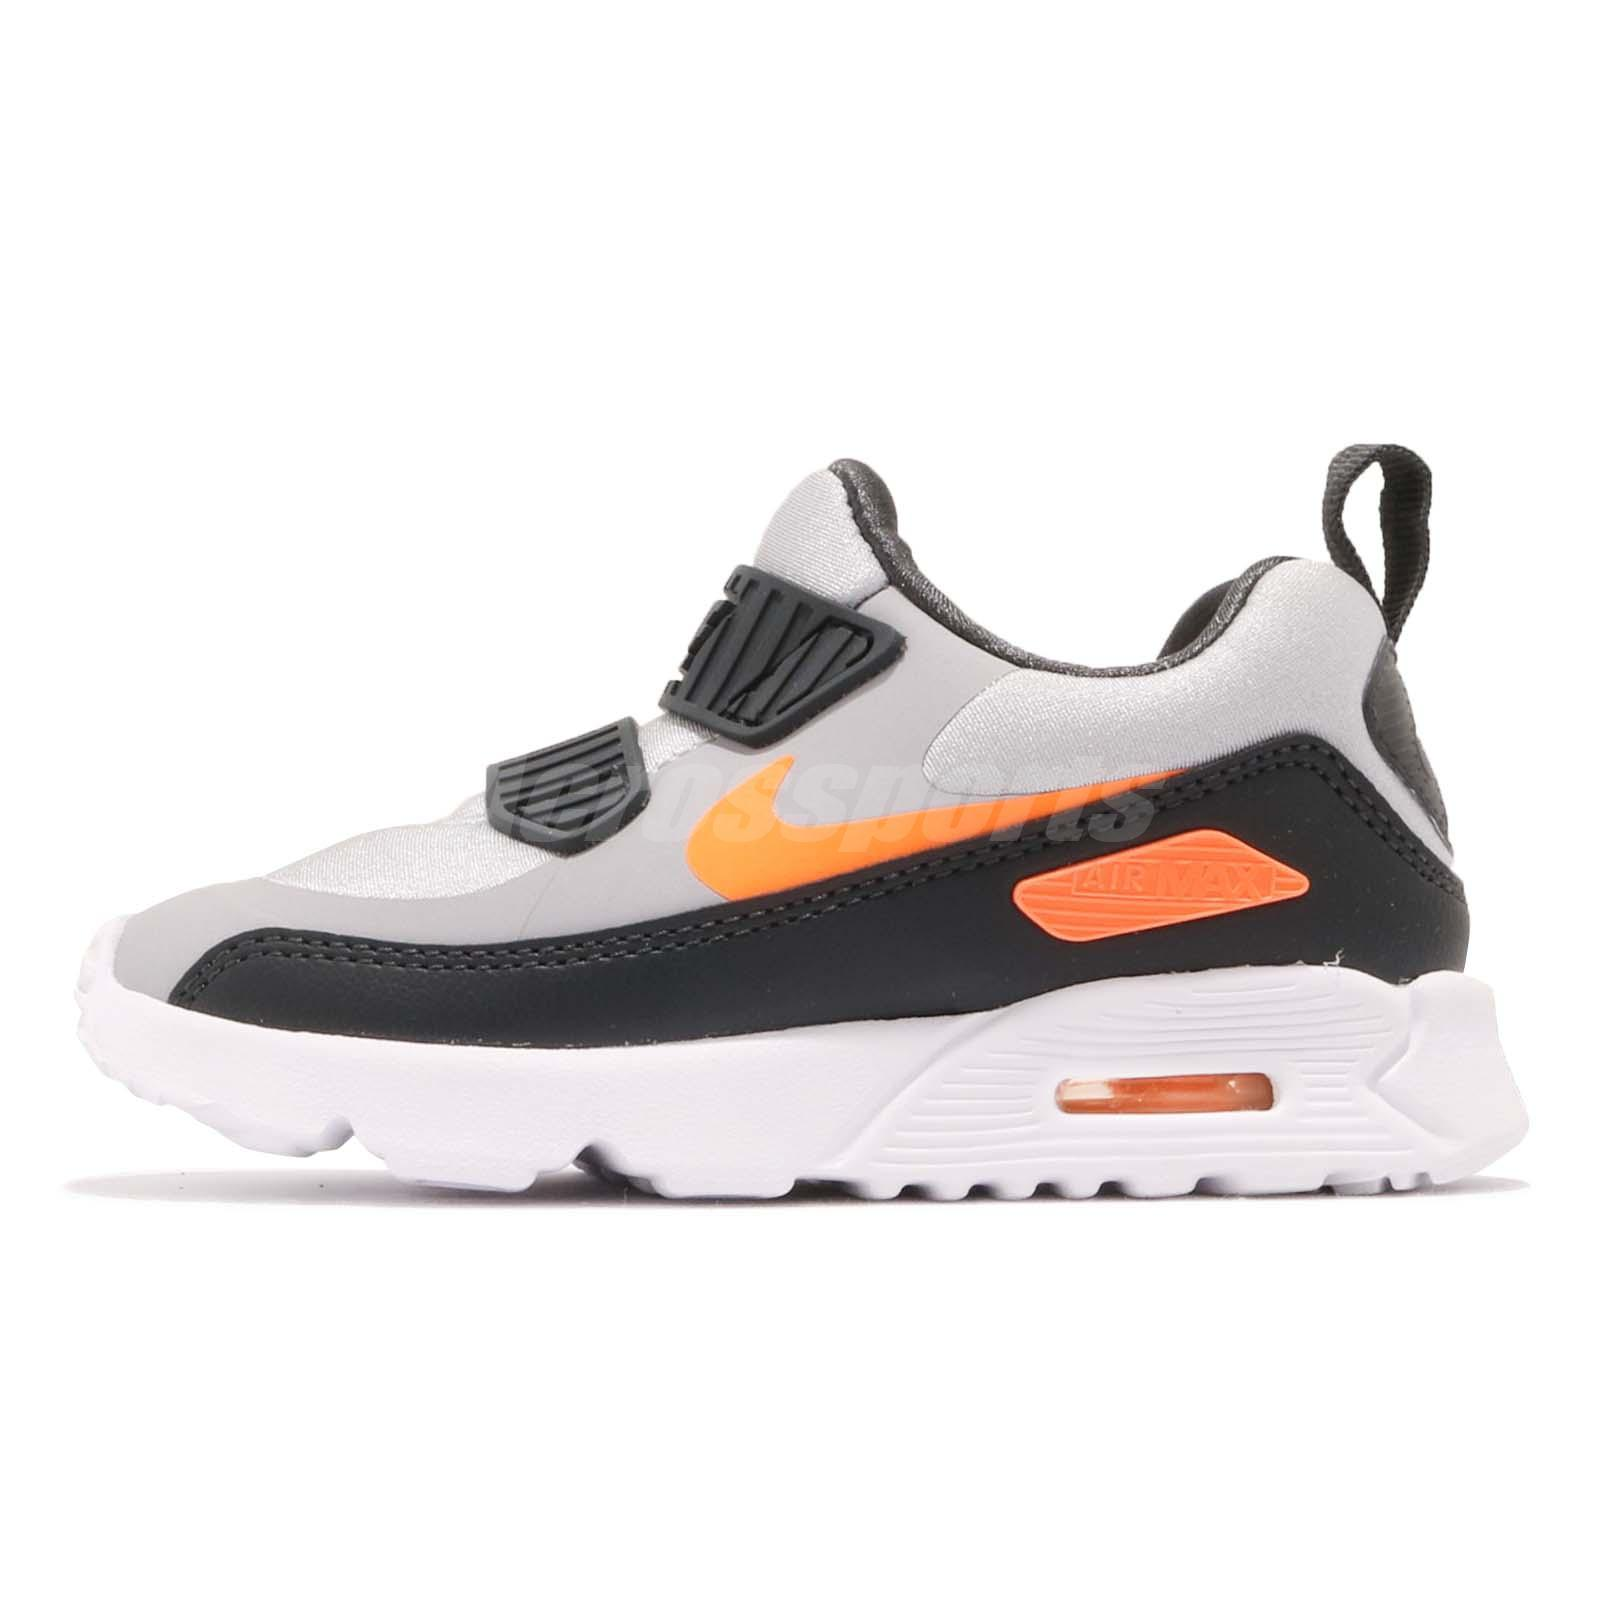 a36e69c13095 Nike Air Max Tiny 90 TD Grey Orange Black Toddler Infant Baby Shoes 881924- 009